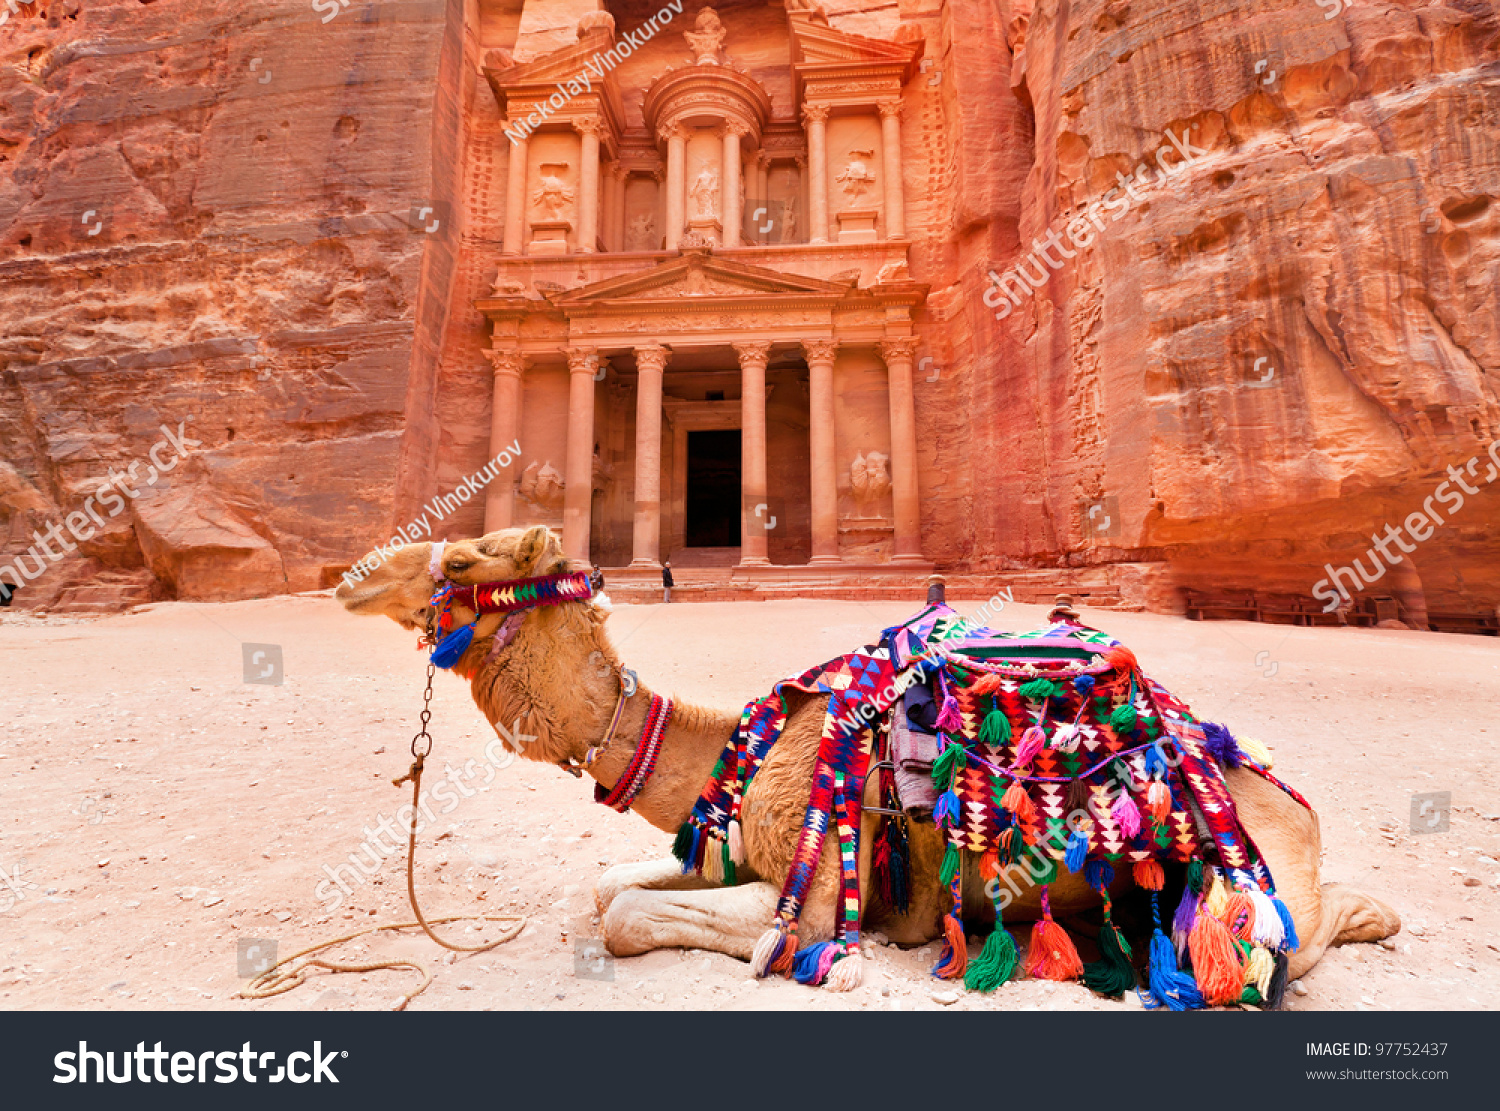 Bedouin Camel Rests Near The Treasury Al Khazneh Carved Into The Rock At Petra Jordan Stock